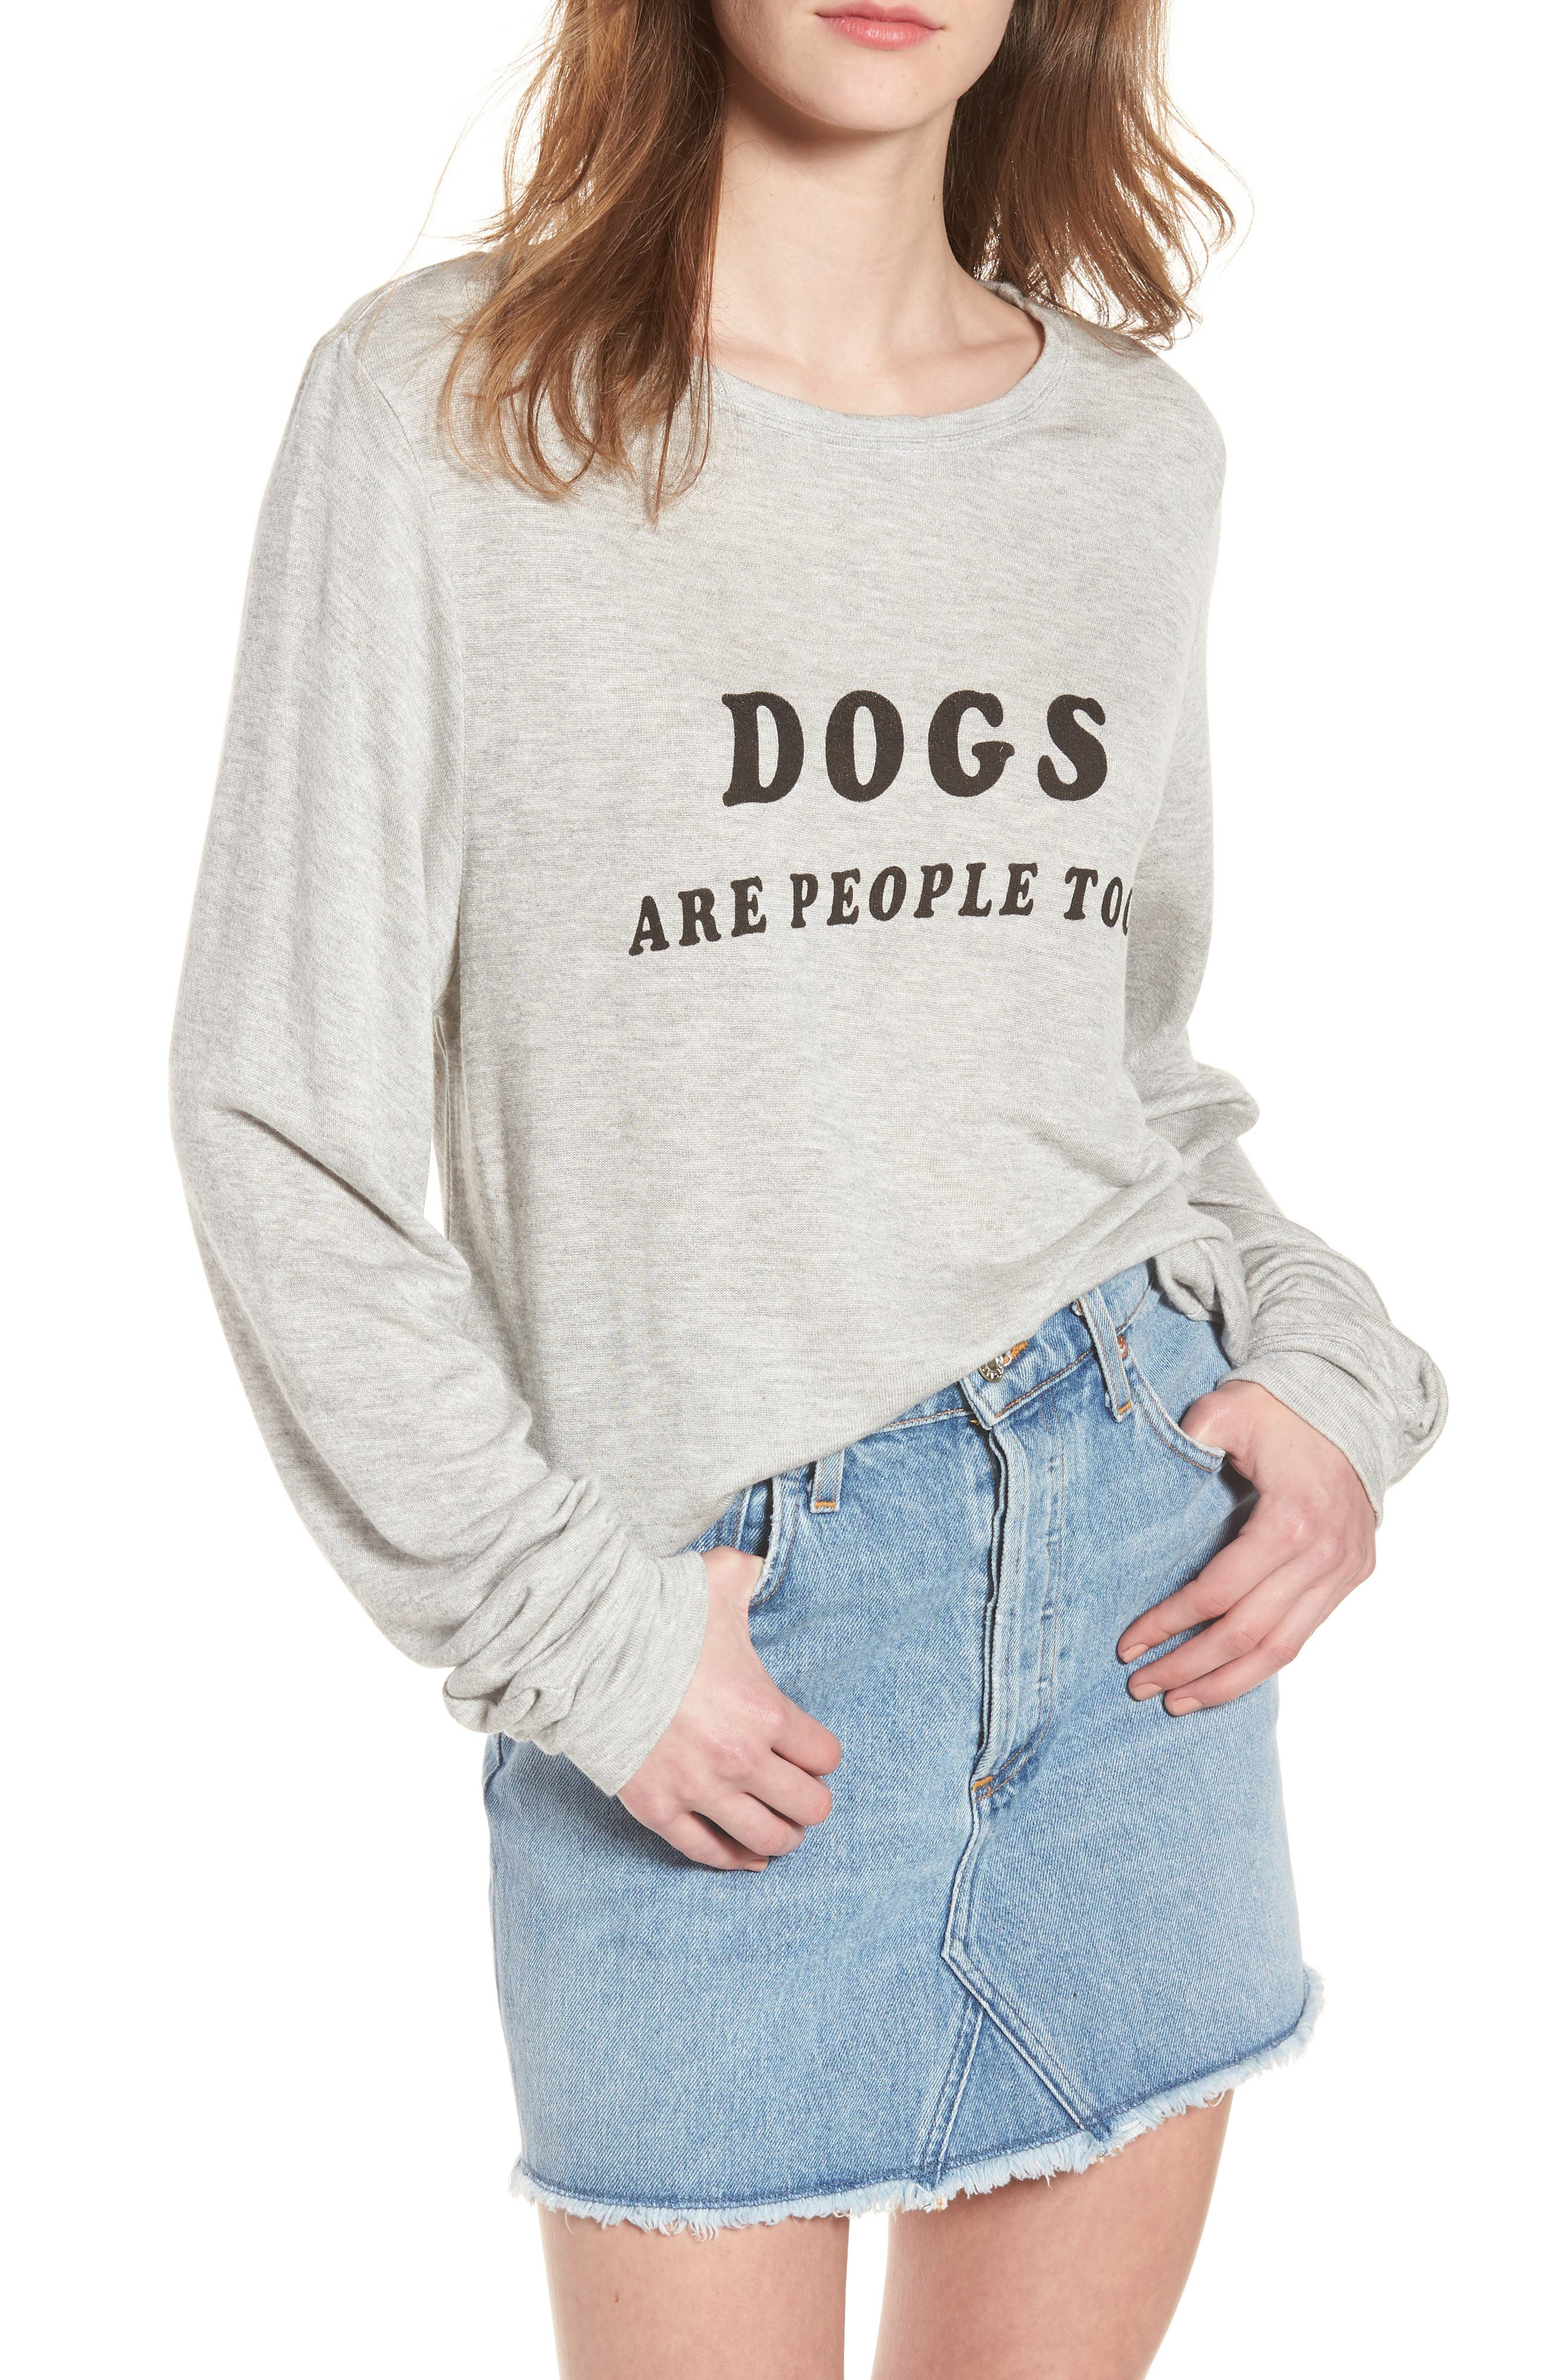 Dogs - Baggy Beach Jumper Pullover,                             Main thumbnail 1, color,                             Heather